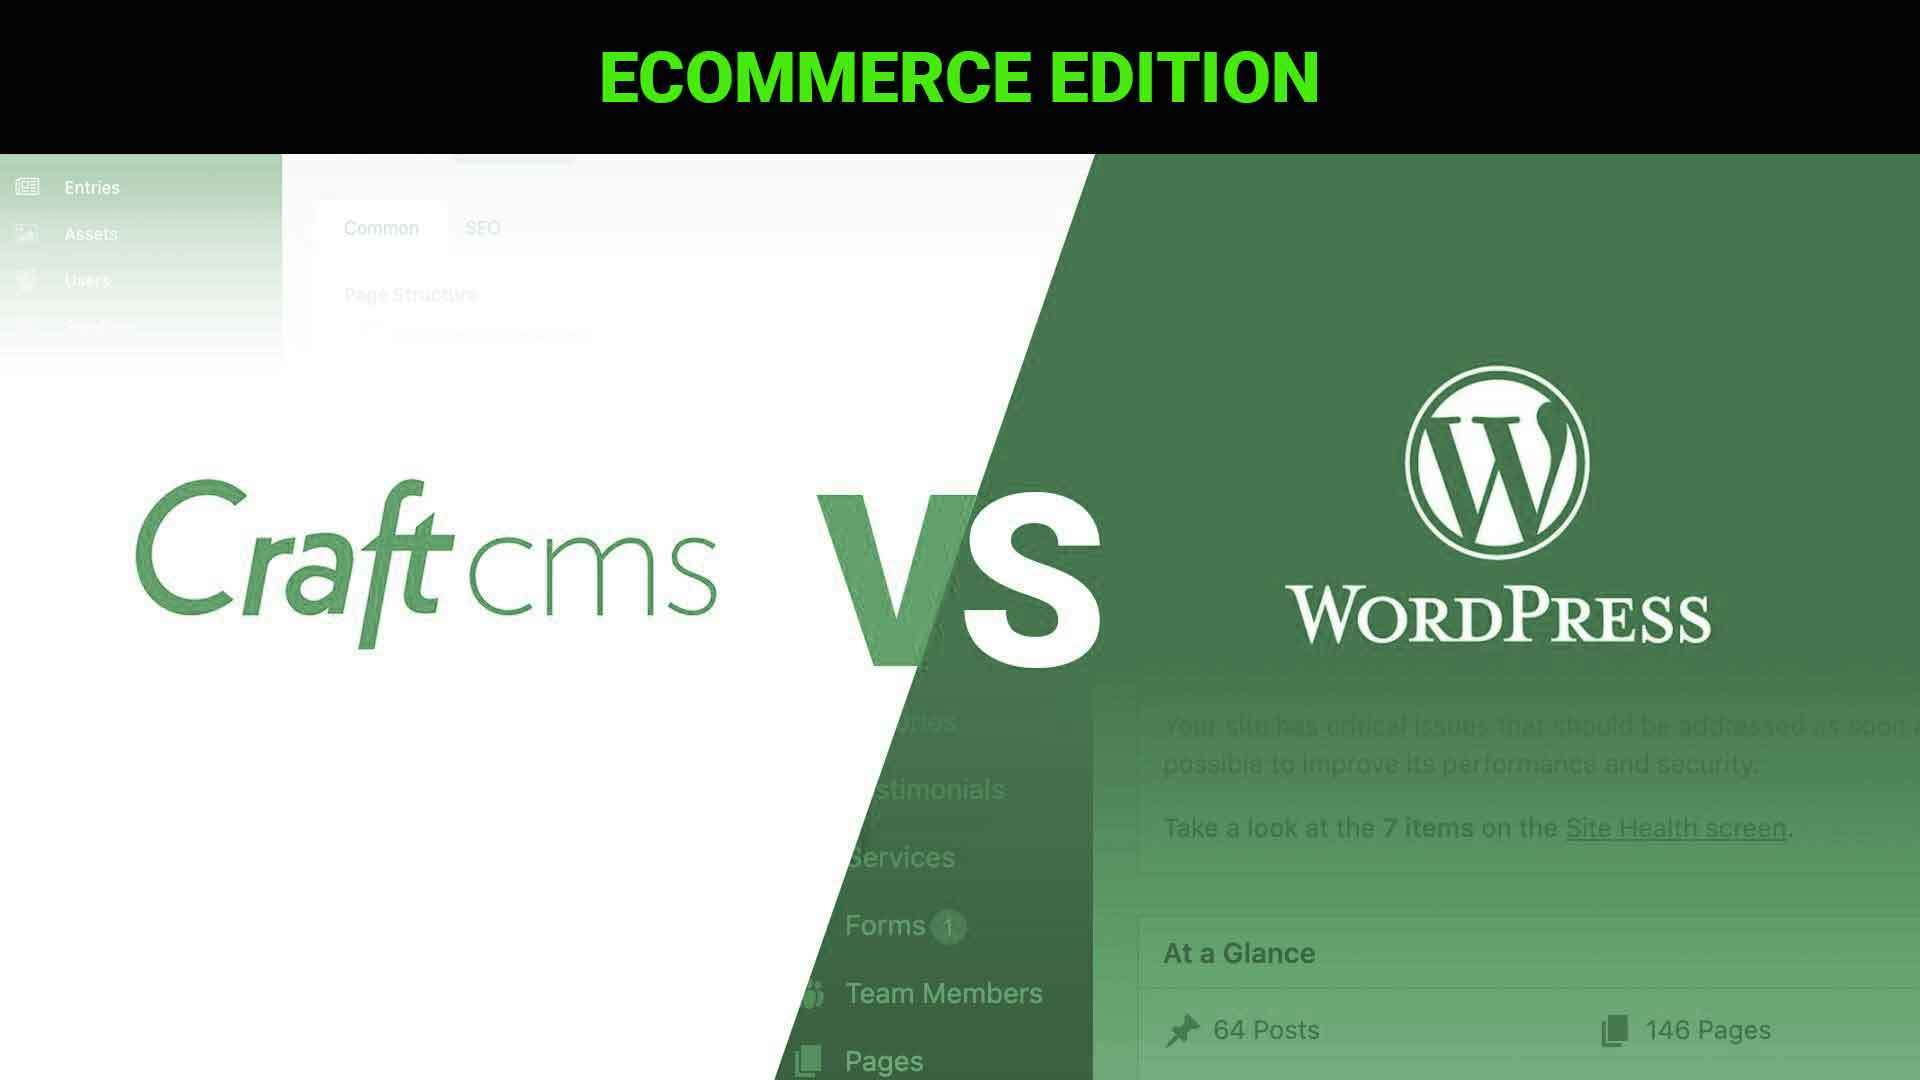 Craft CMS vs WordPress: Ecommerce Edition